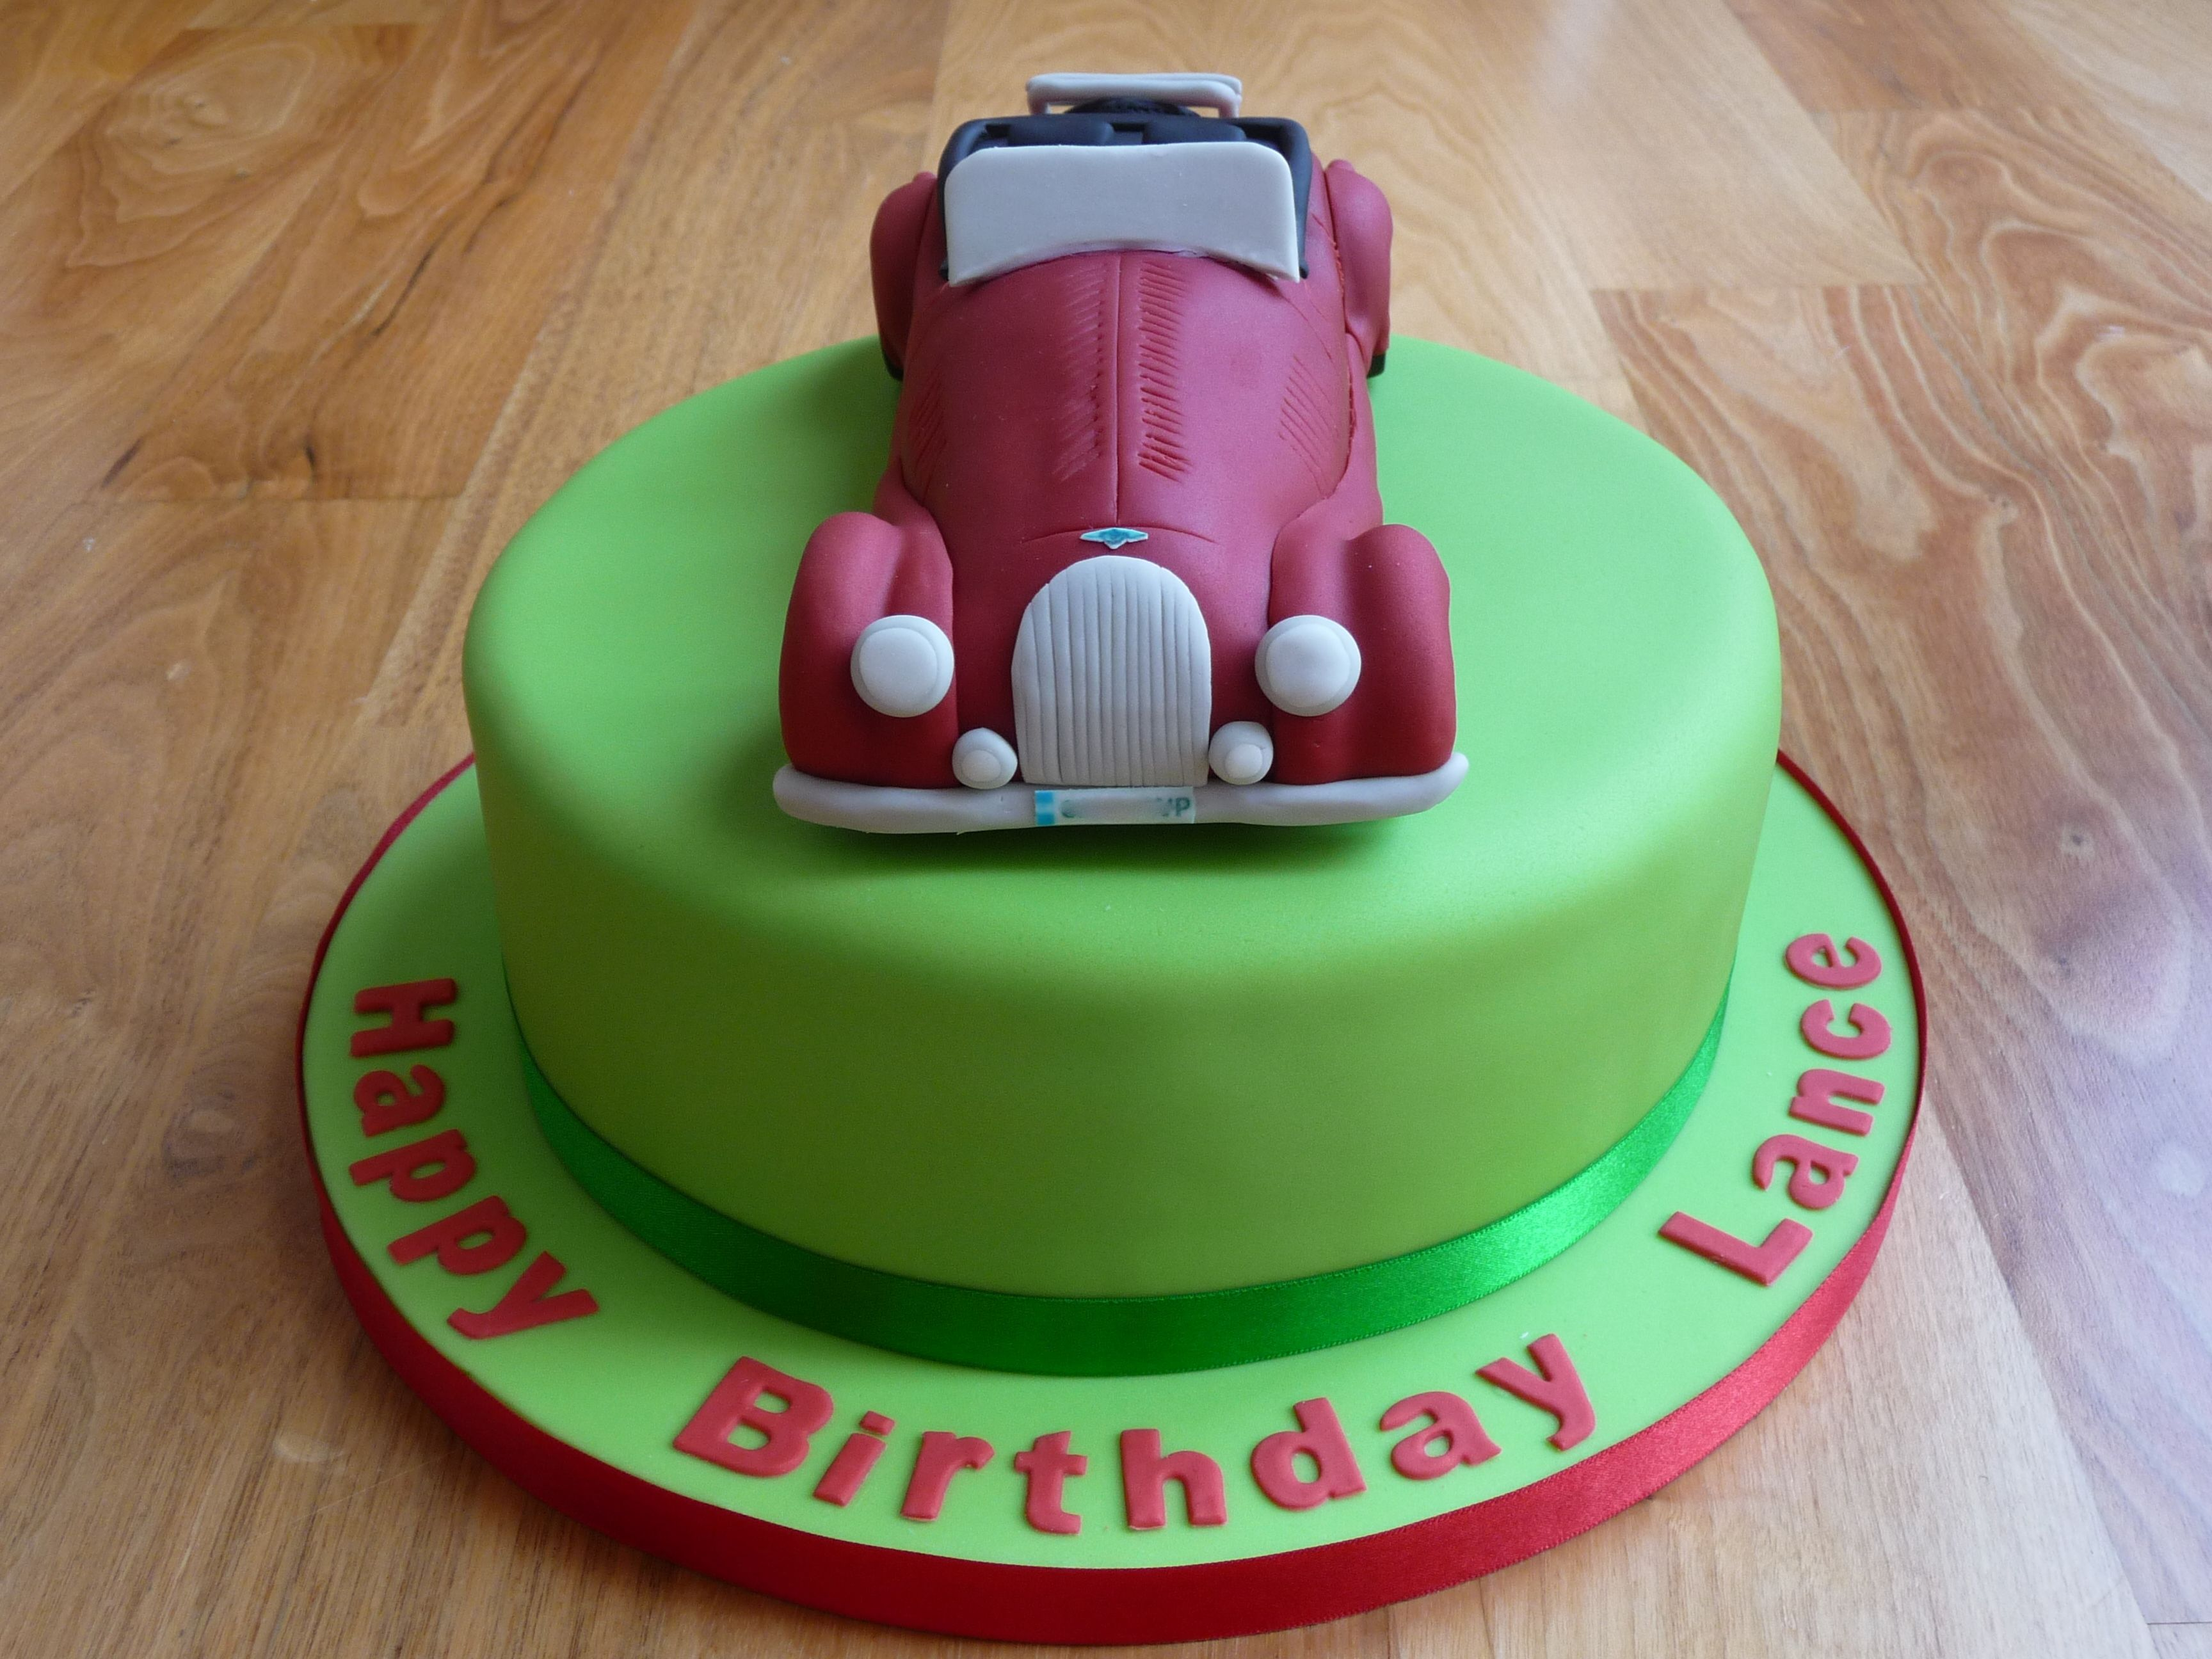 Morgan 4x4 car birthday cake Birthday Cakes Pinterest